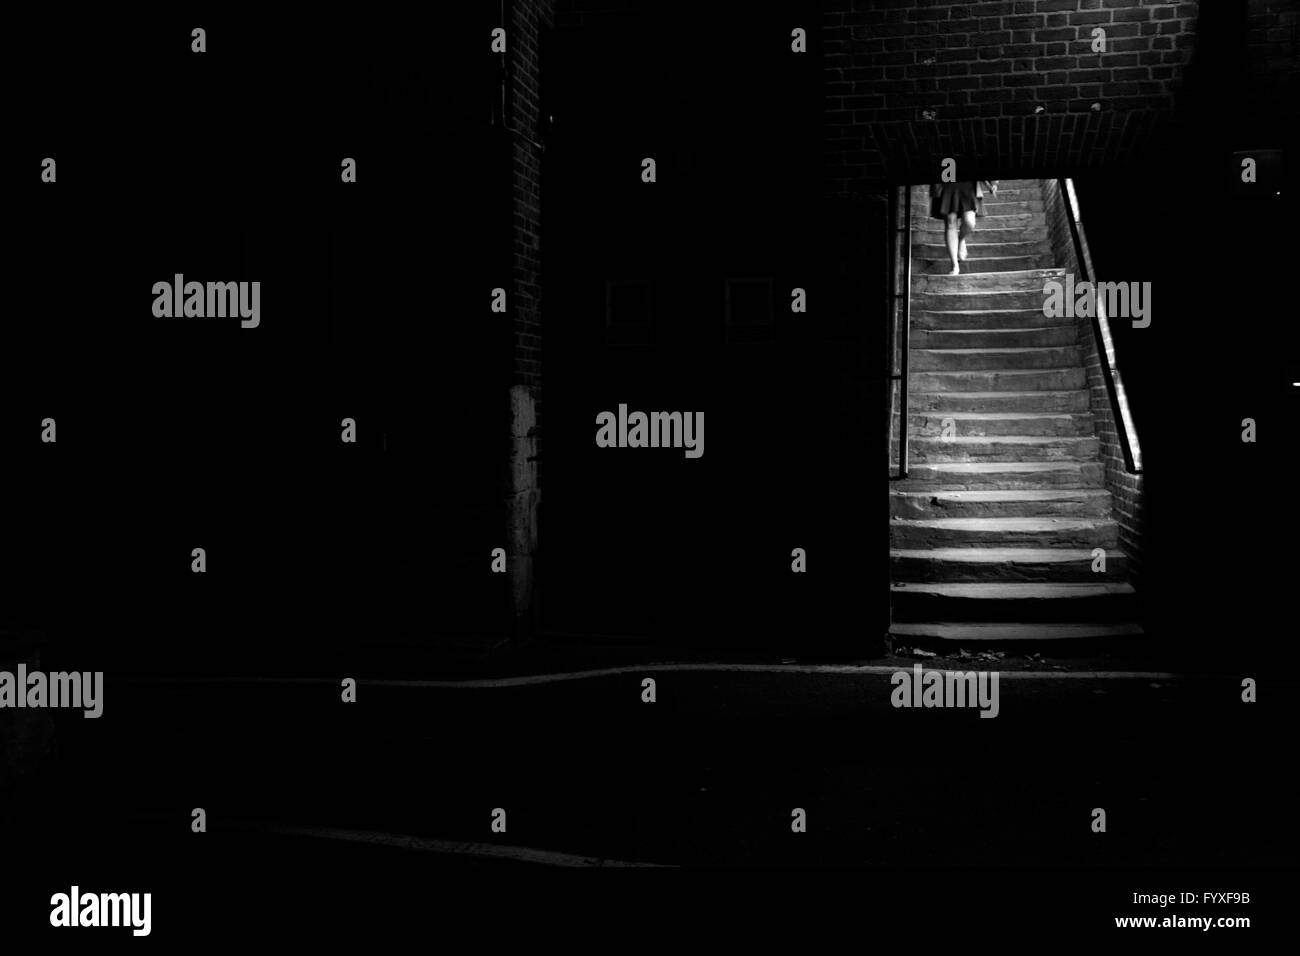 Essex Street steps, Embankment, London, UK Stock Photo